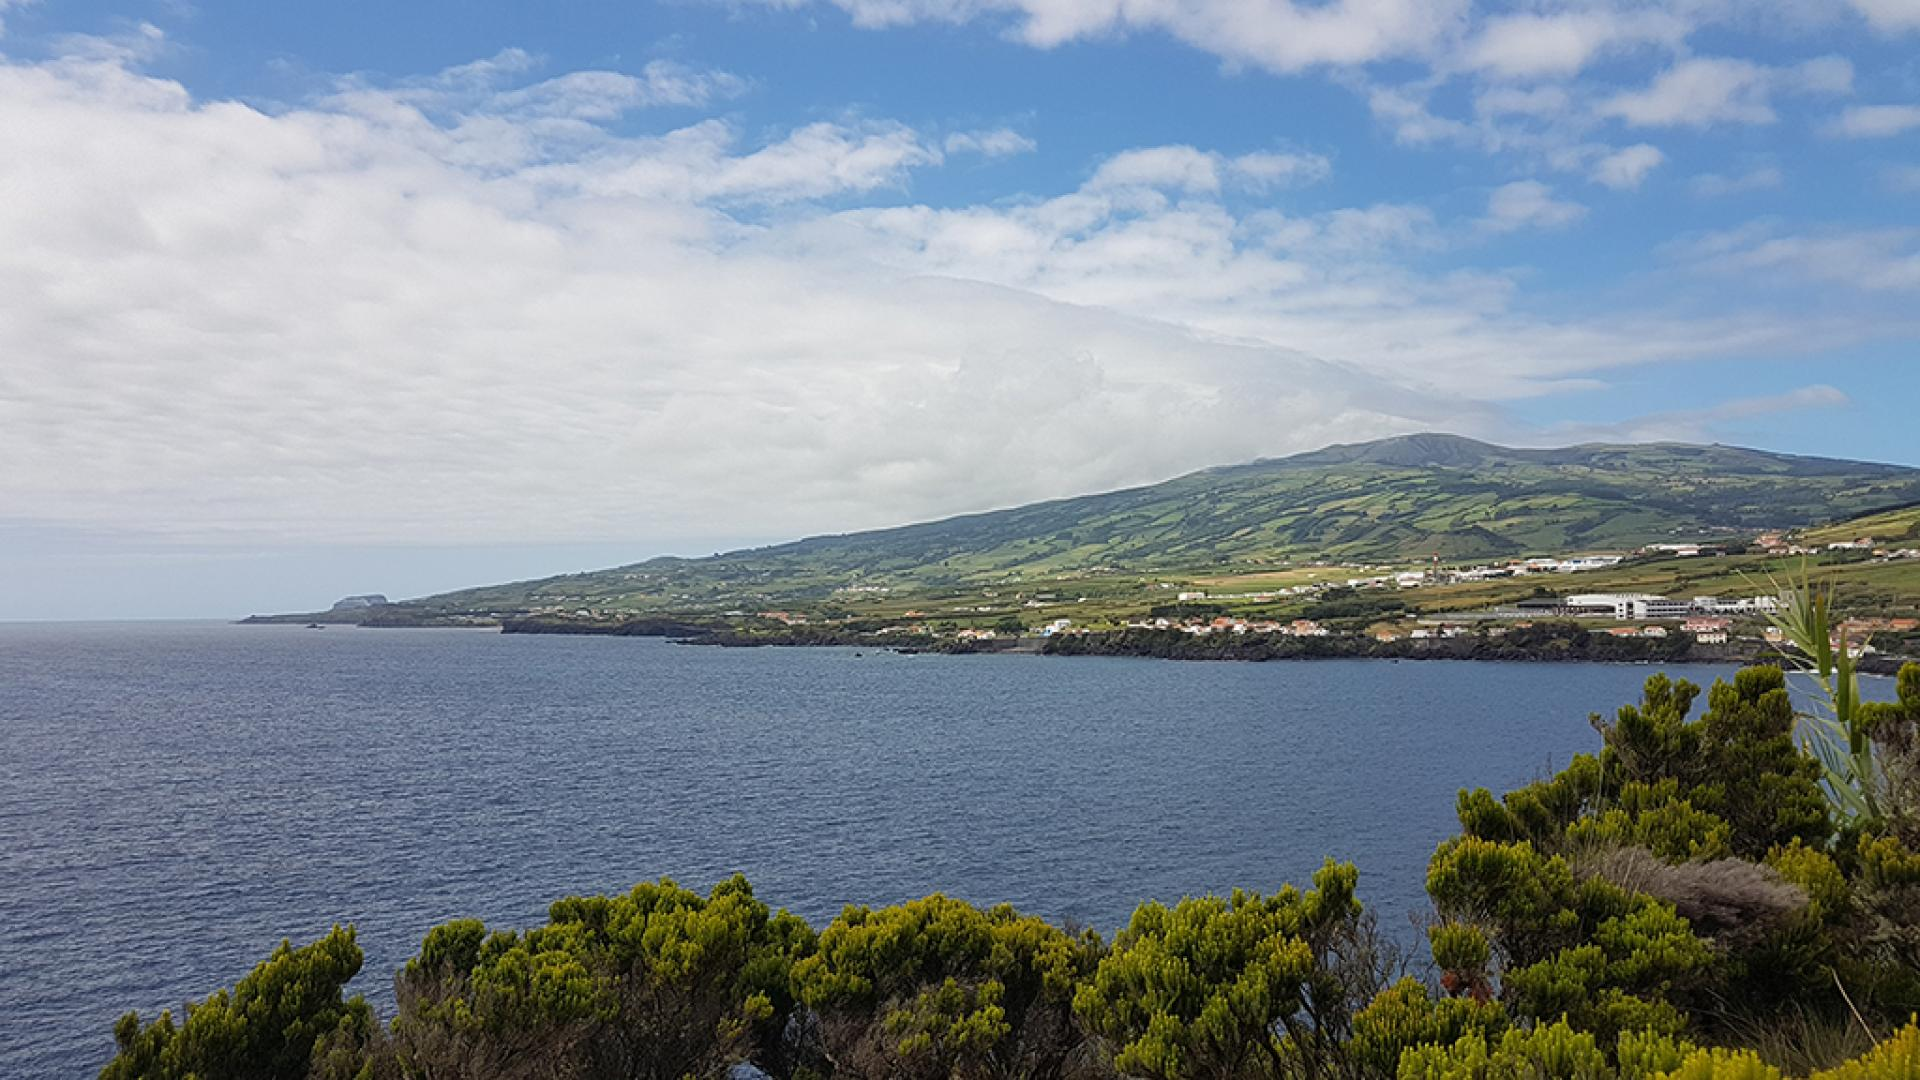 Mount Pico in the Azores shrouded in orographically-induced clouds